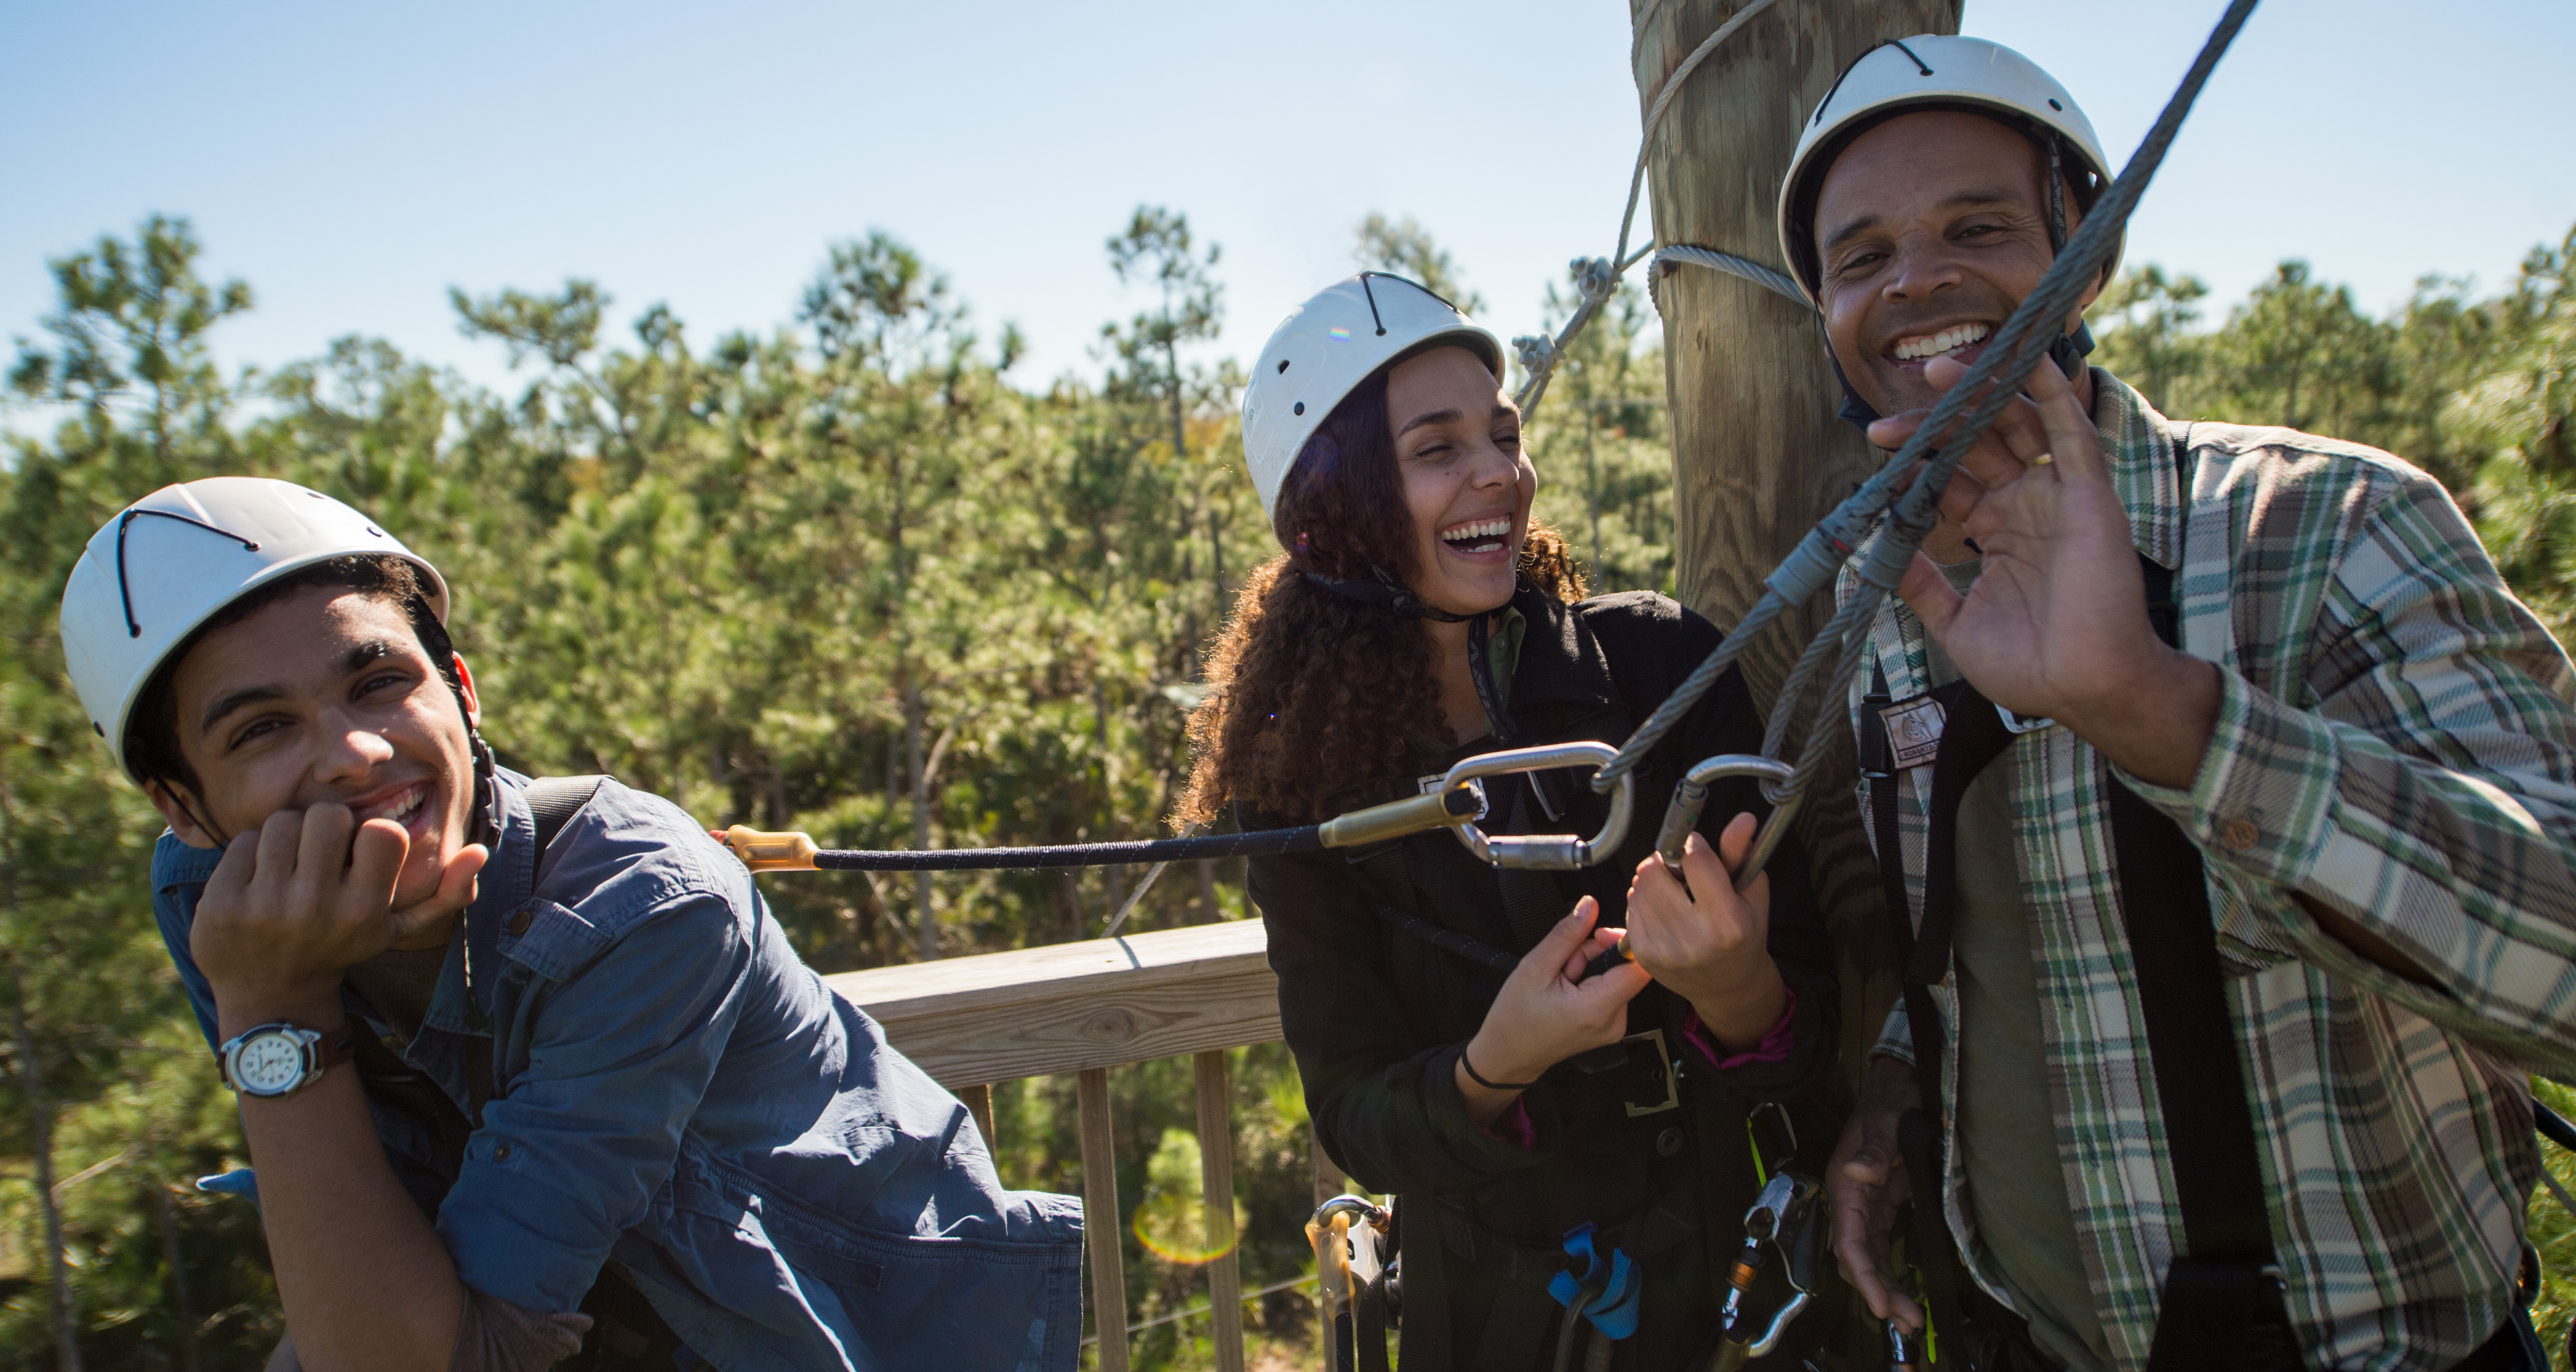 Two young men and a young woman in helmets wear harnesses attached to a zip line